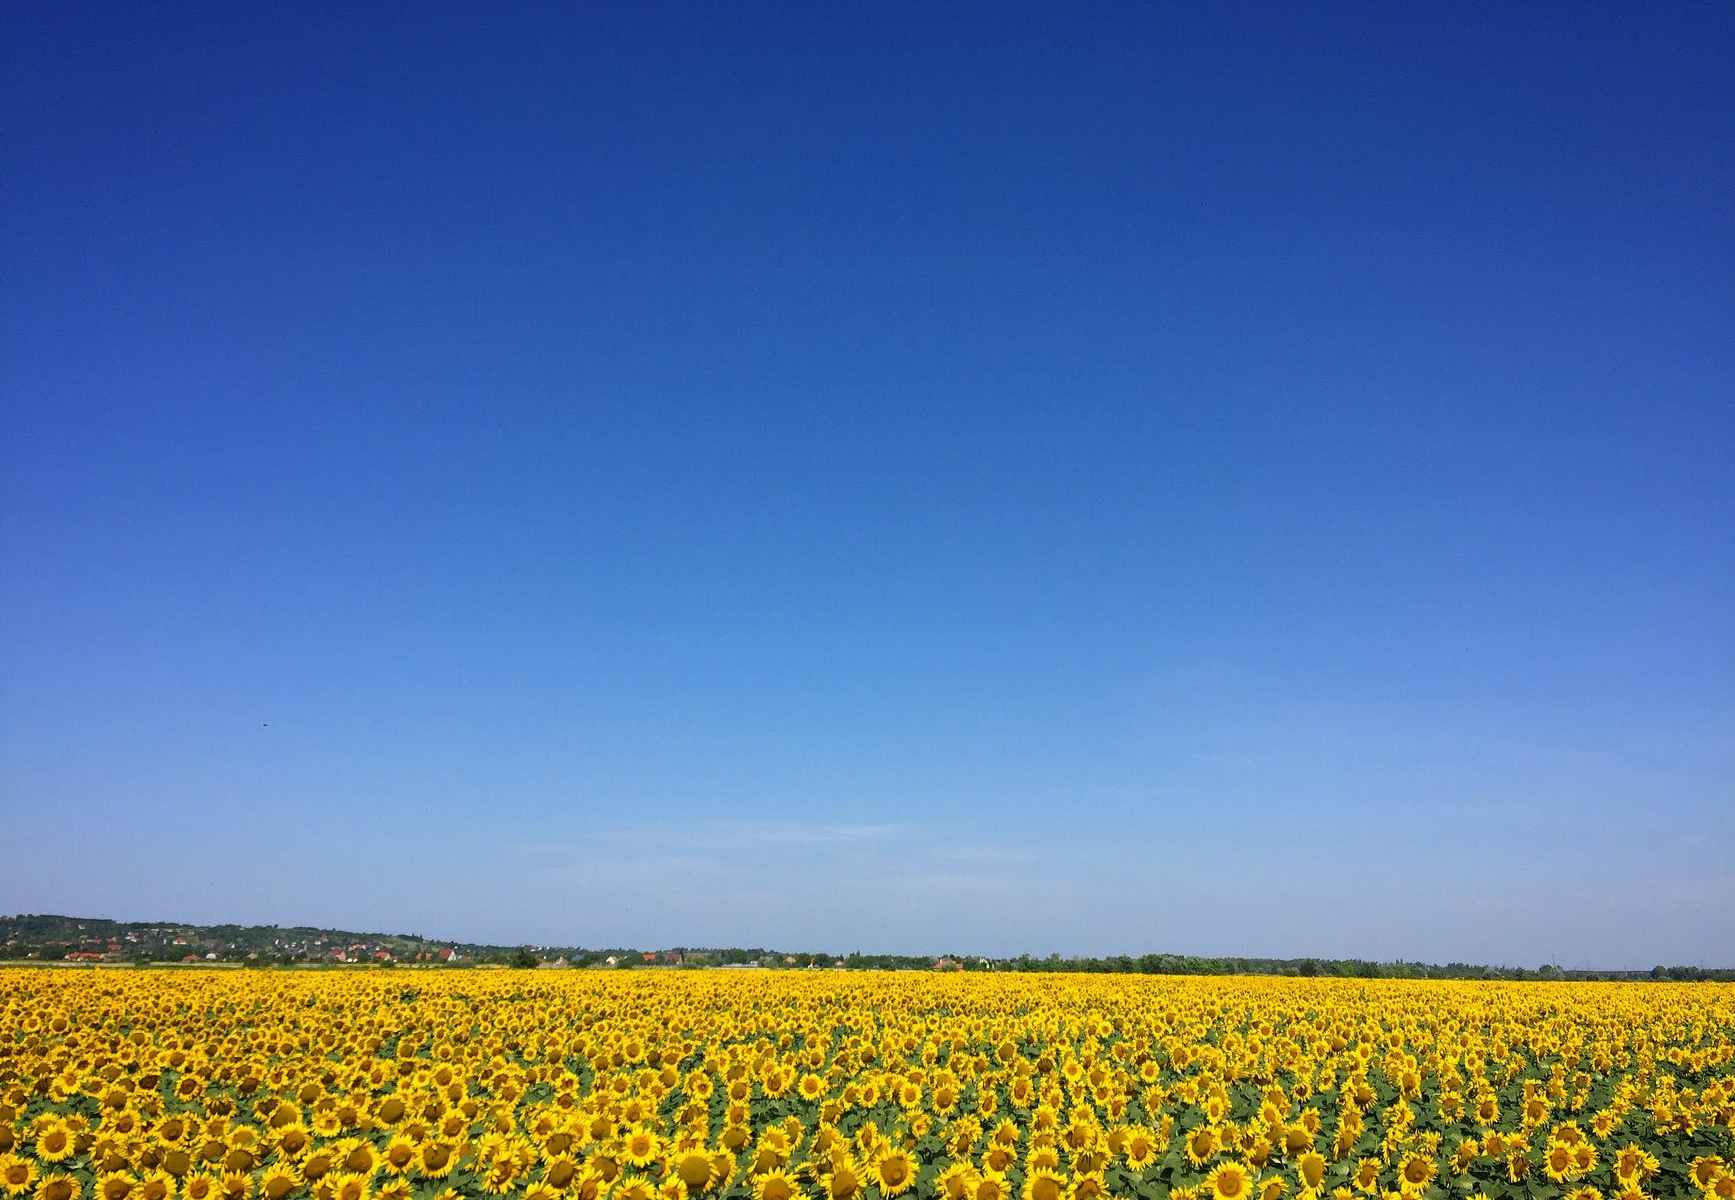 sunflower garden under blue sky